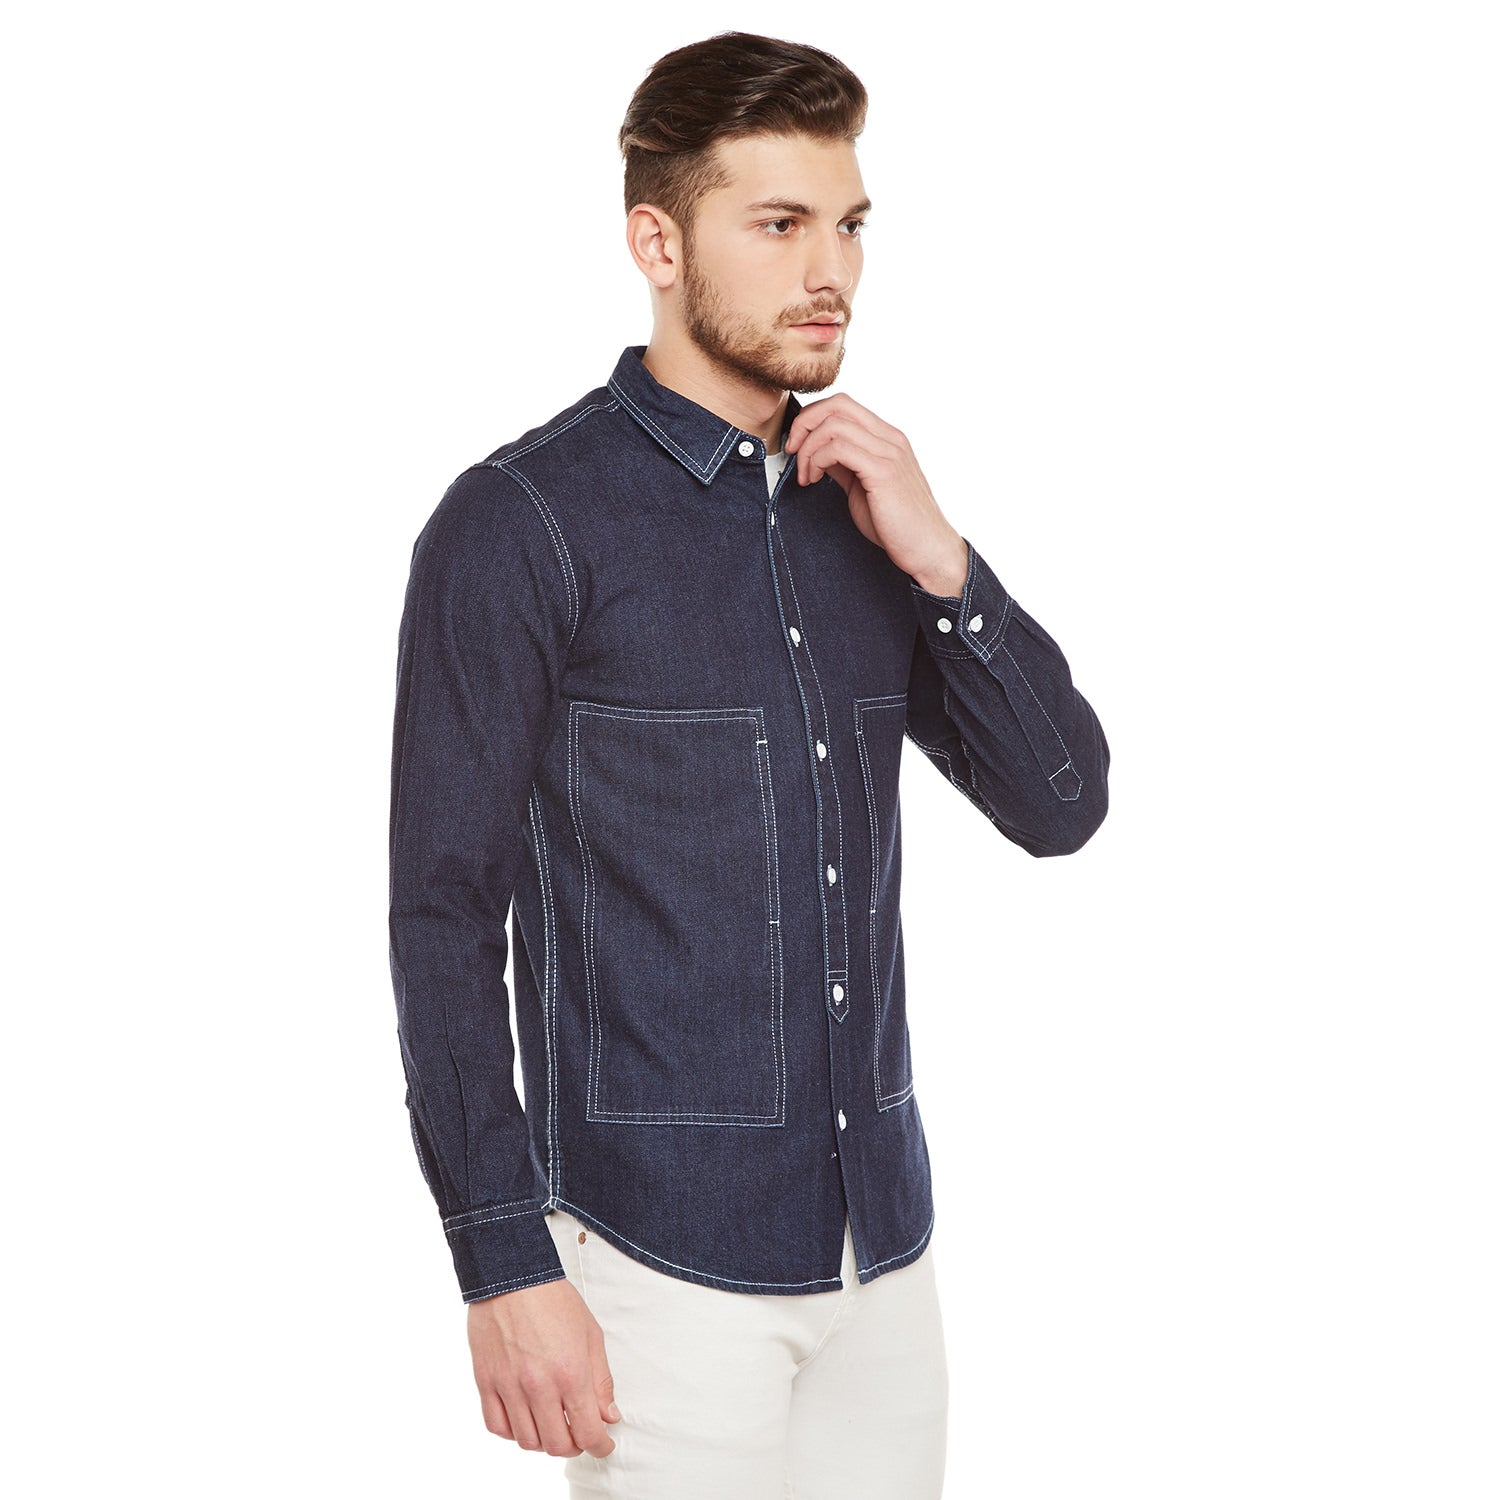 Atorse Mens Enzyme Washed Denim Shirt Low Pockets With Side Opening